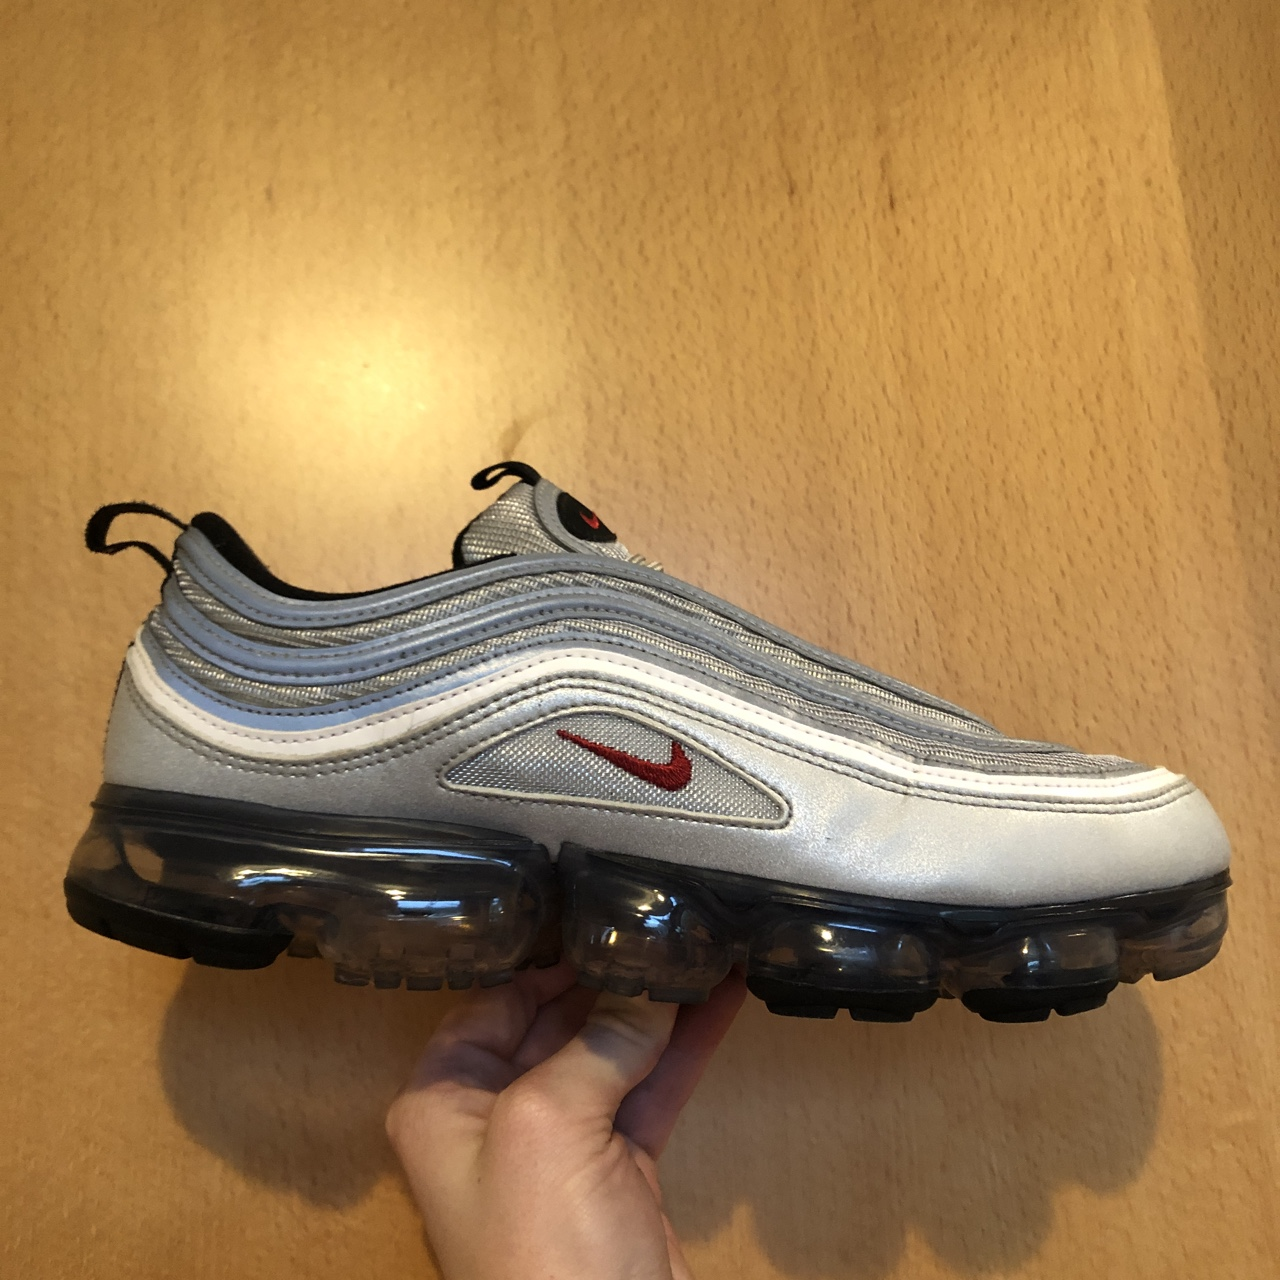 huge discount 2bbbb 02851 Nike Air Max 97 Vapormax Silver Bullet - Bought from... - Depop